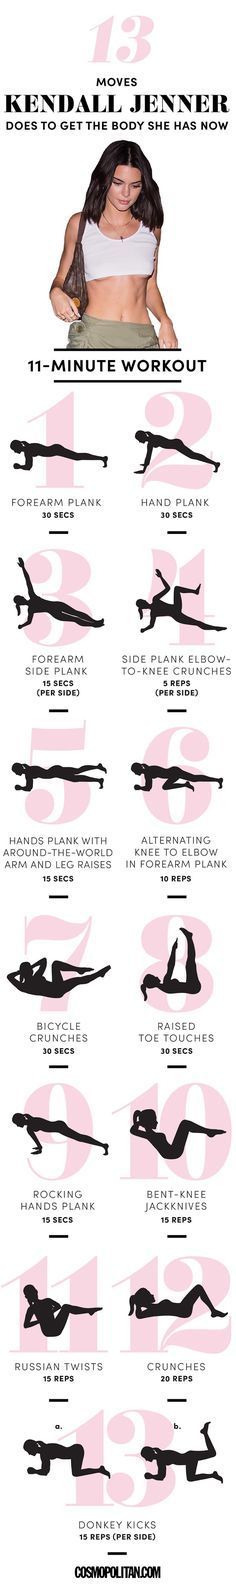 Kendall Jenner 11 minute Ab Workout